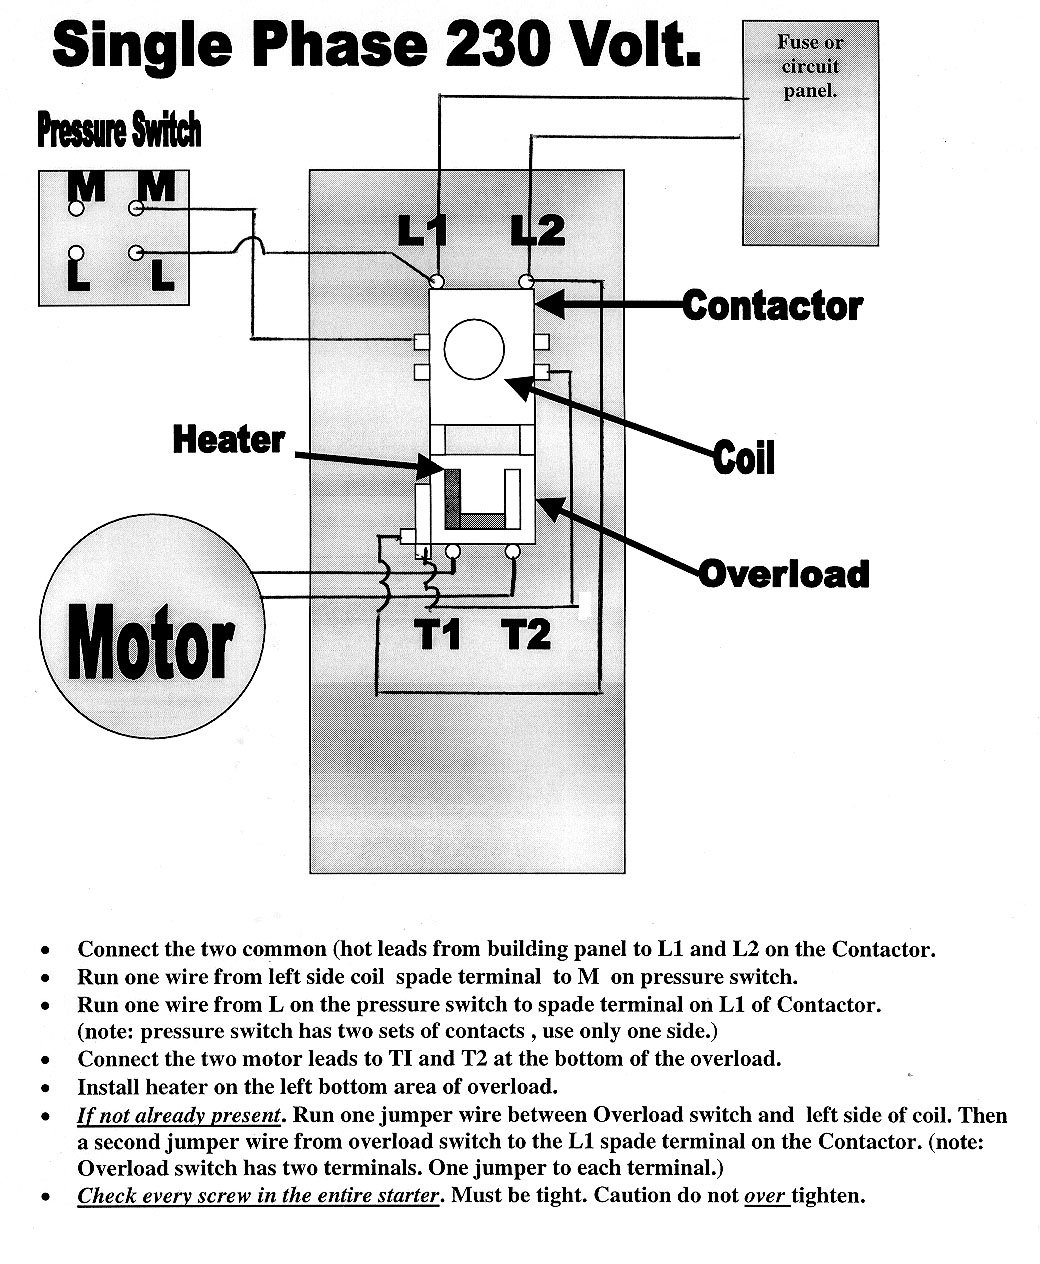 hight resolution of 230v 3 phase contactor wiring schematic diagram data 230v 3 phase contactor wiring